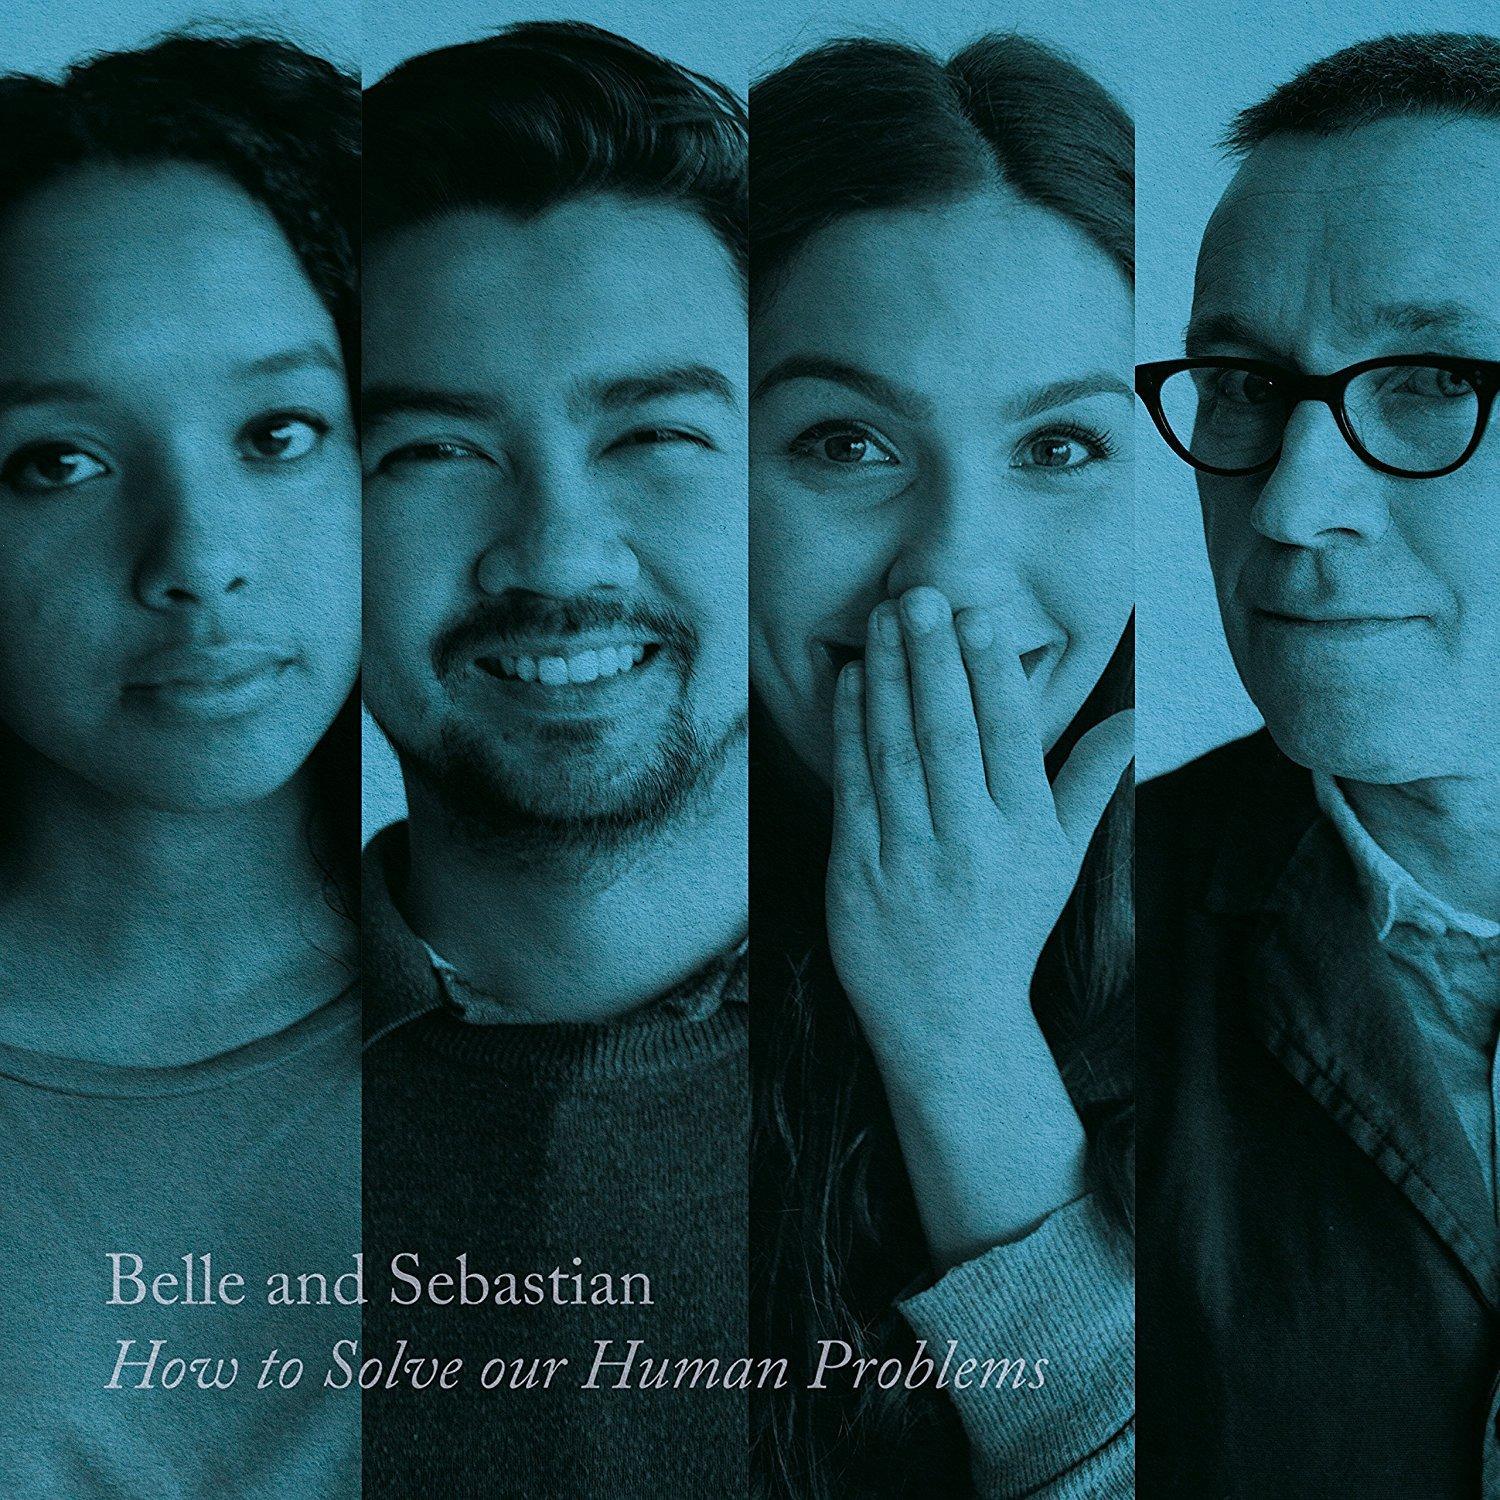 Belle & Sebastian - How To Solve Our Human Problems (Part 3) EP [Vinyl]